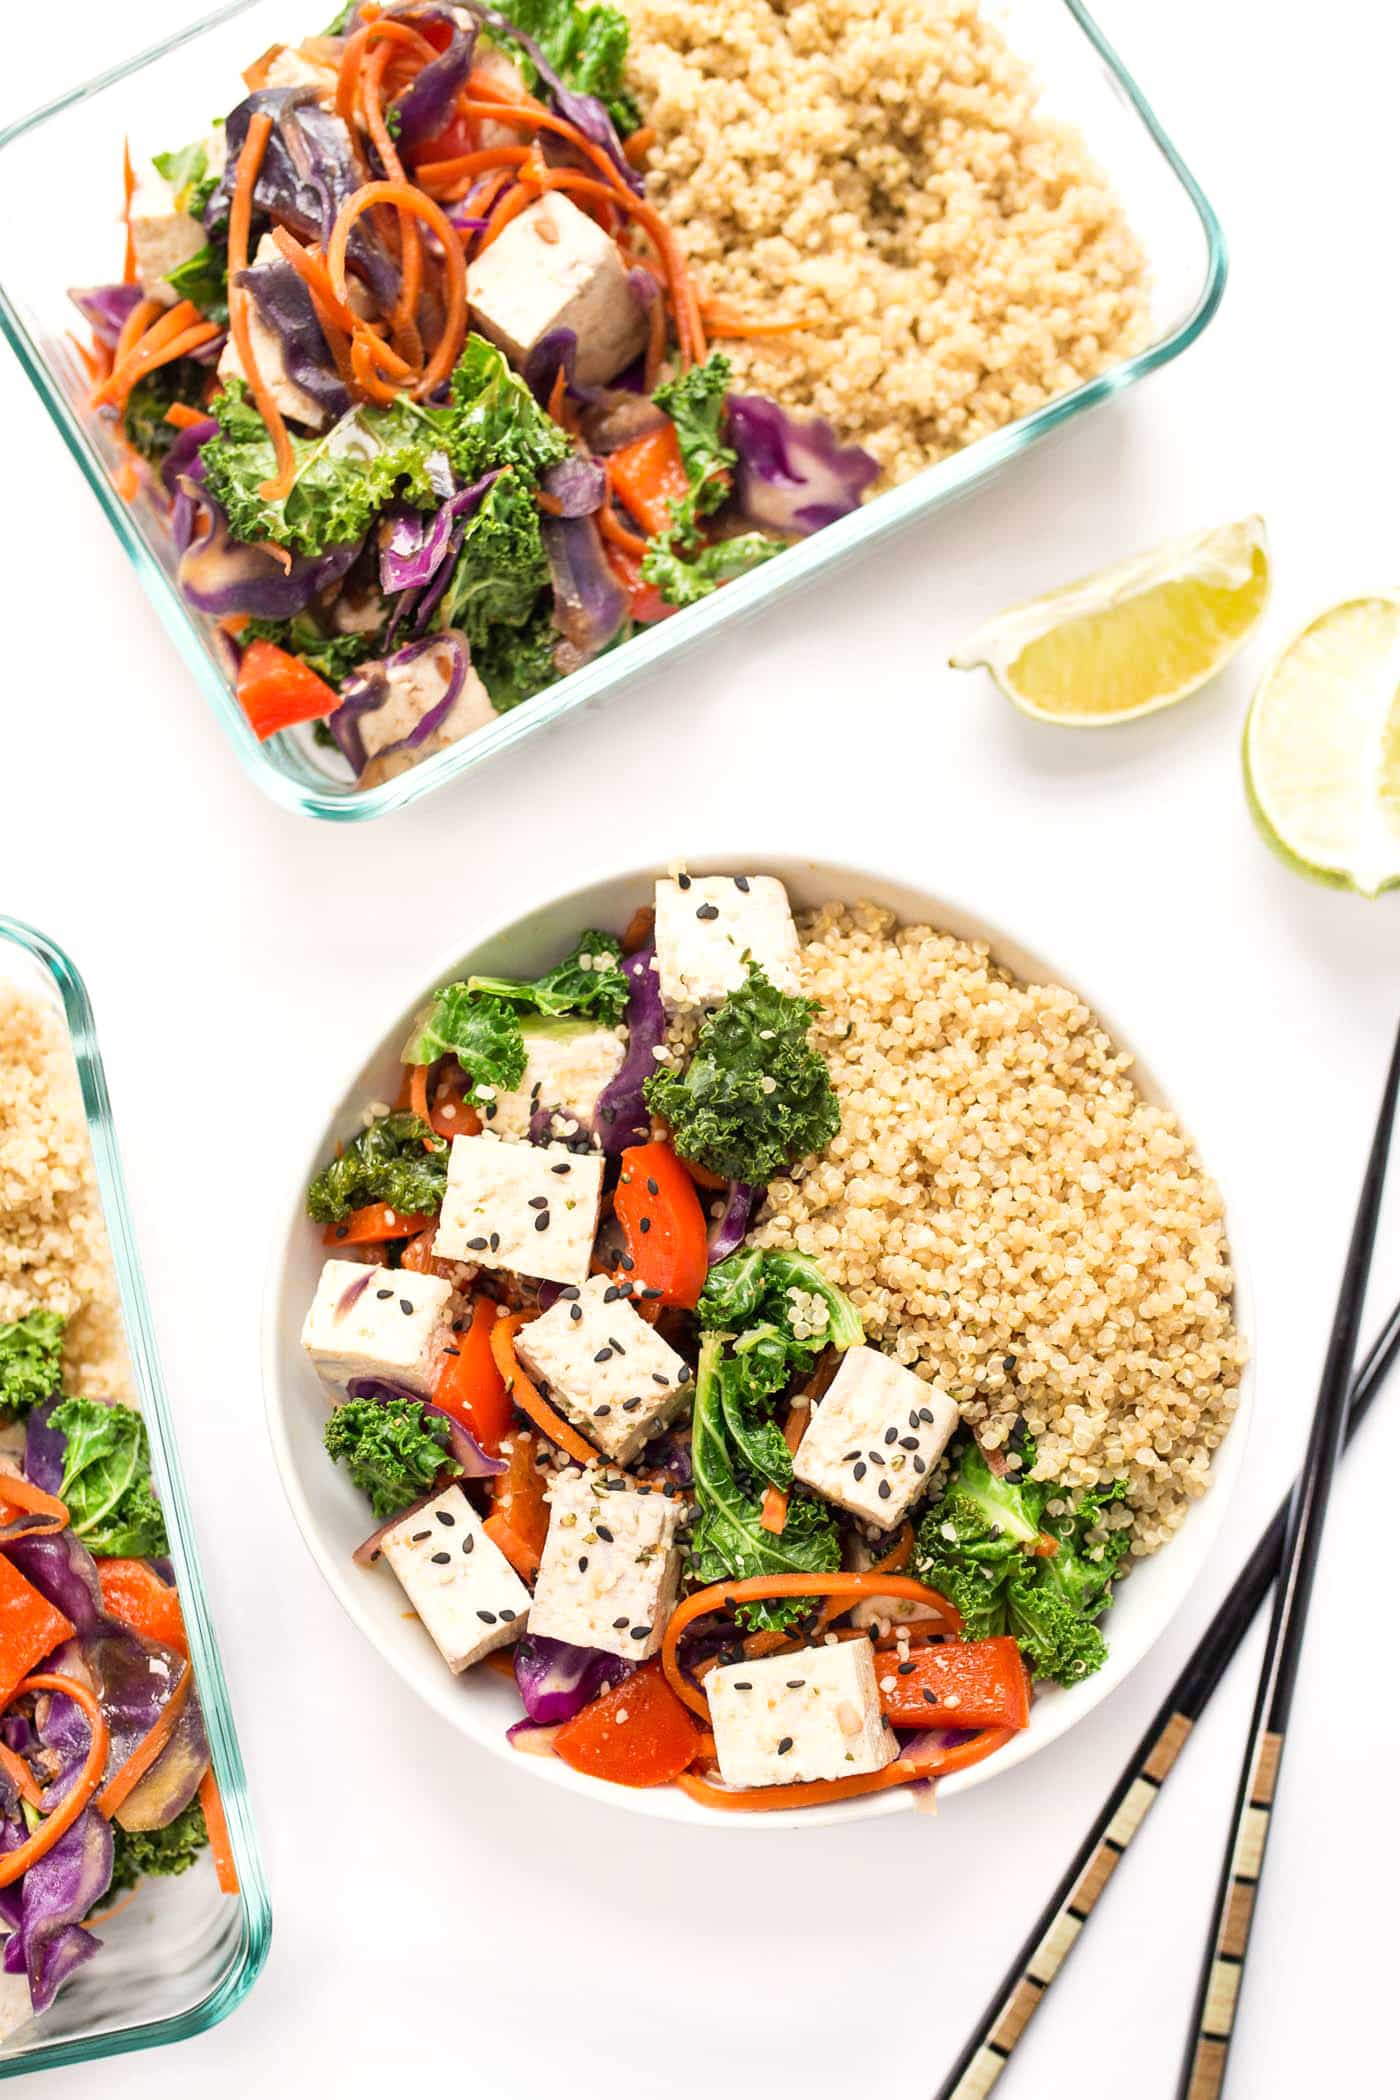 This RAINBOW Vegetable Quinoa Stir Fry is made in just one pan, 10 ingredients and ready in under 20 minutes!